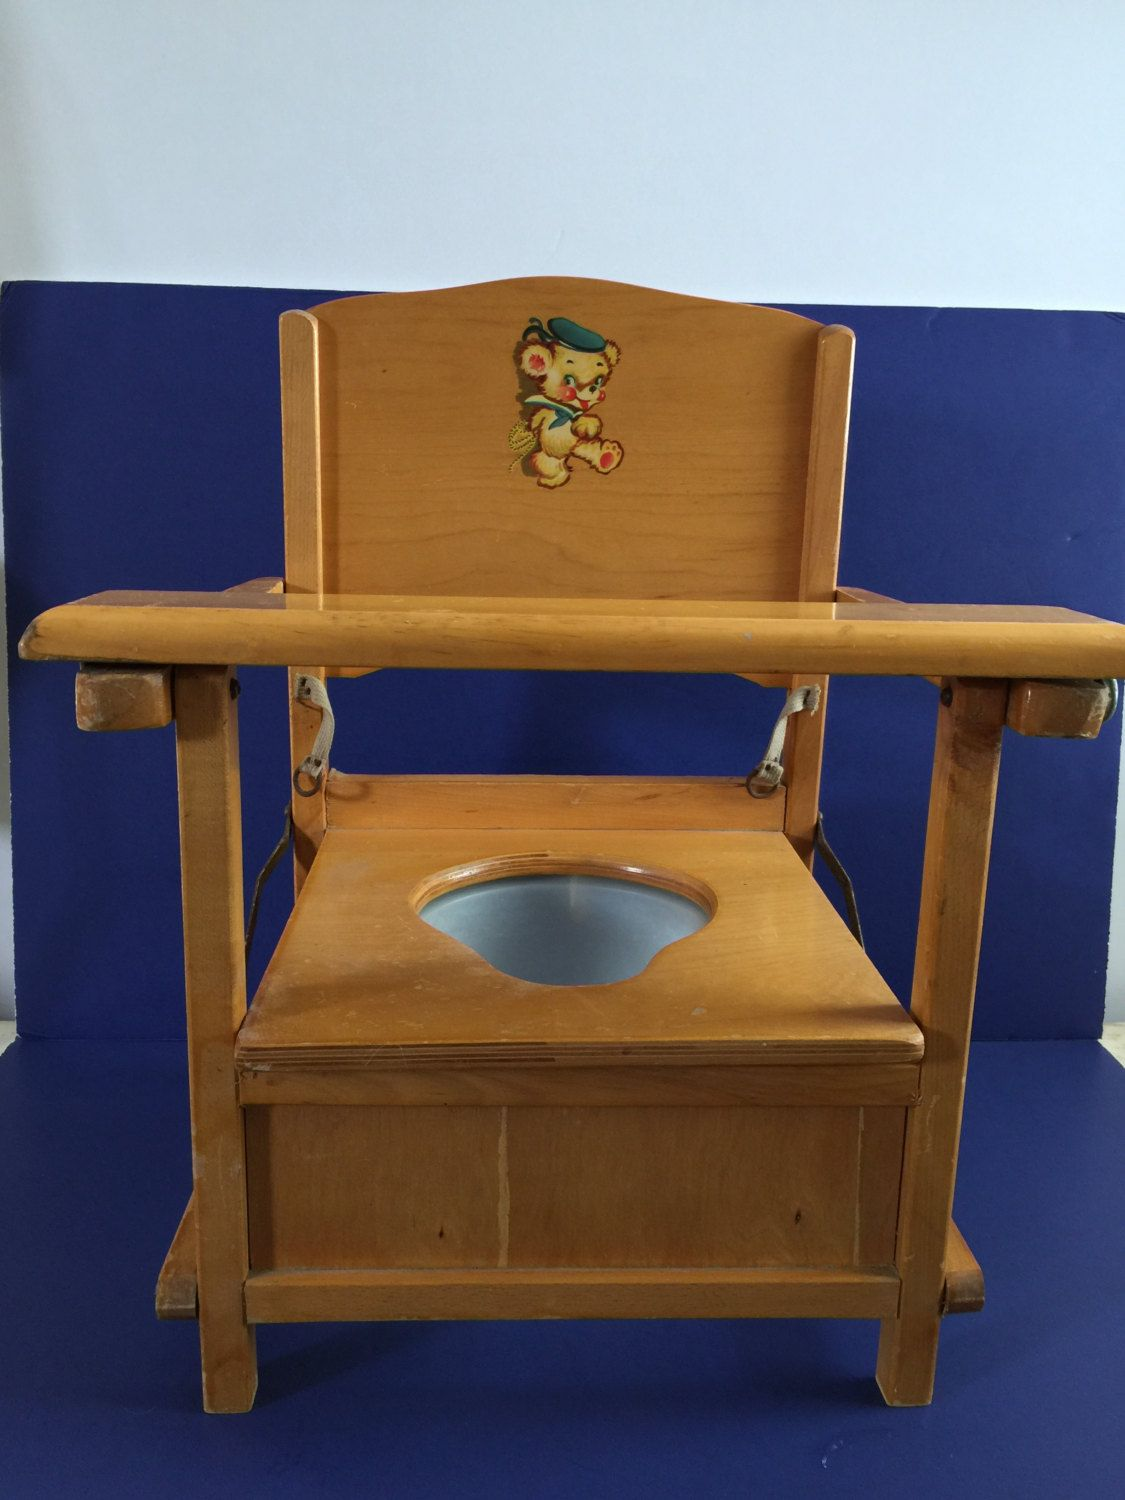 1950's Thayer Tops for Tots Vintage Retro Wooden Potty